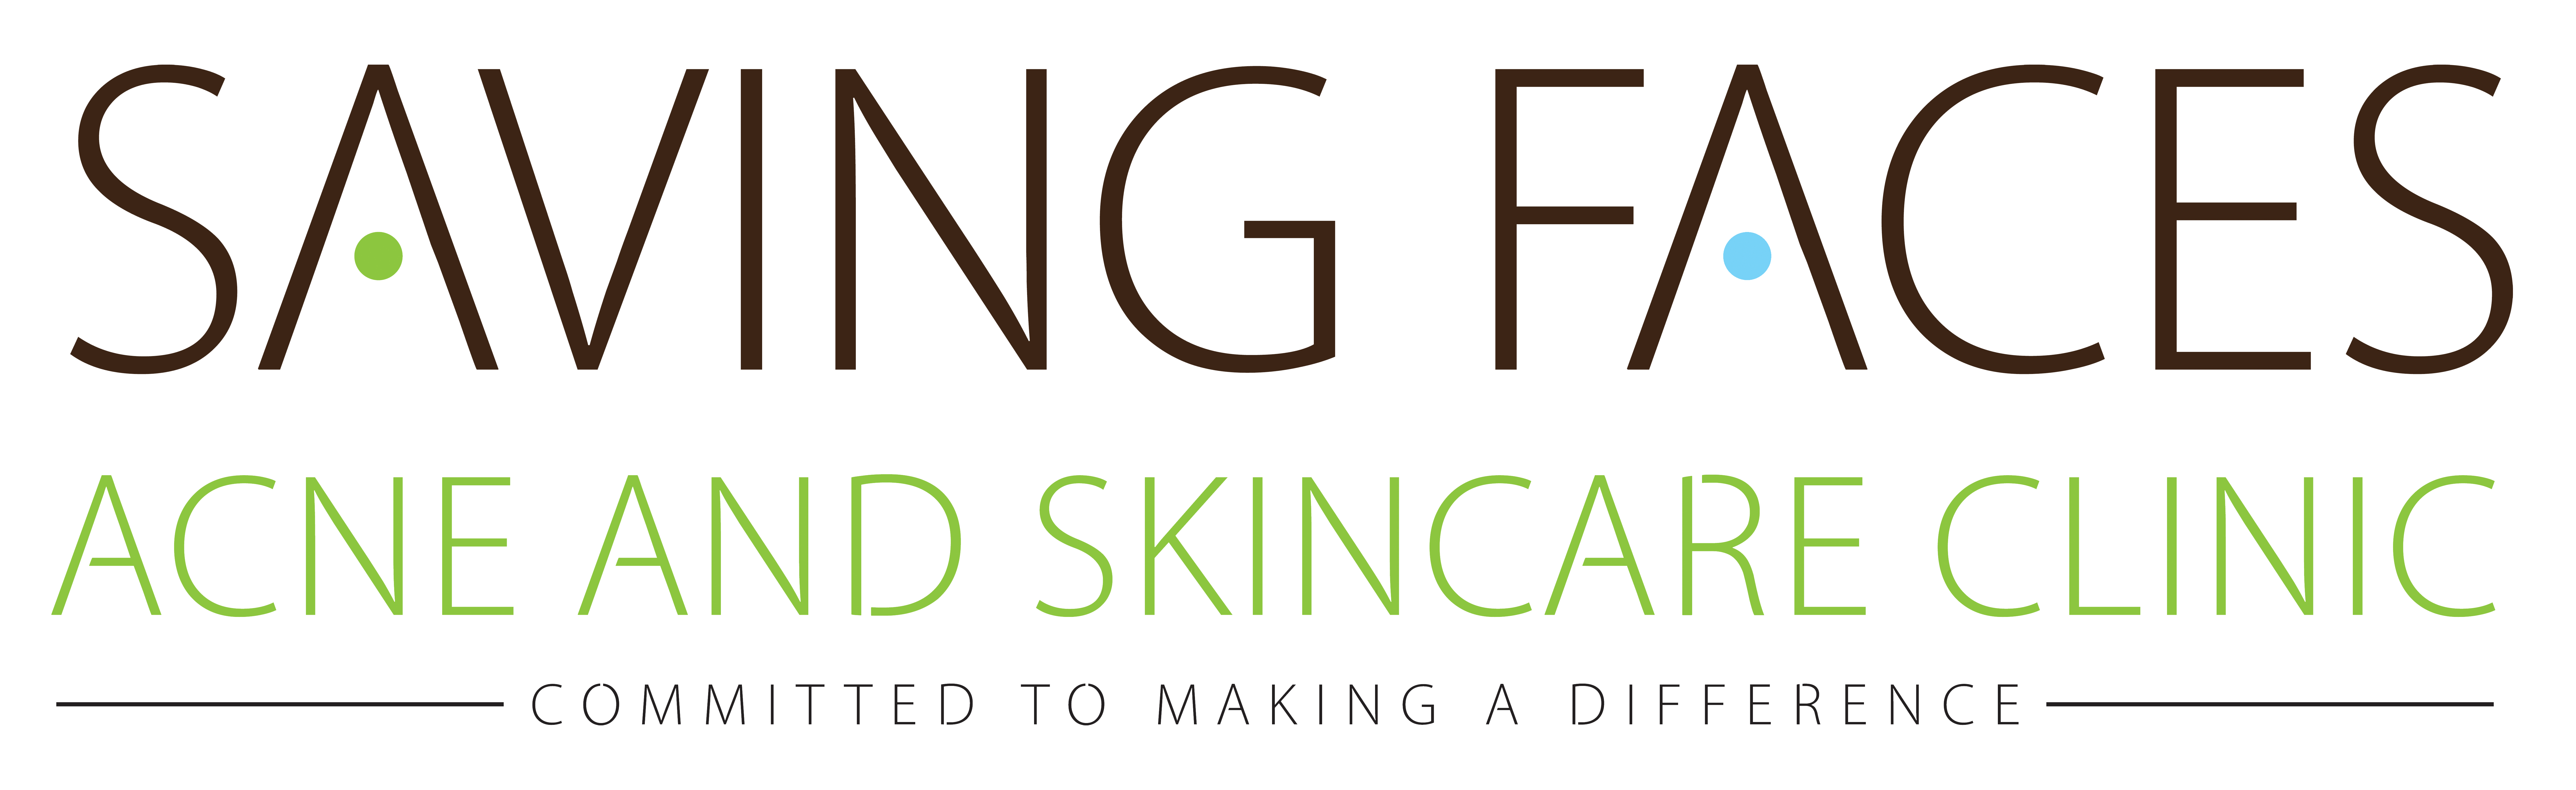 Saving Faces Acne and Skincare Clinic